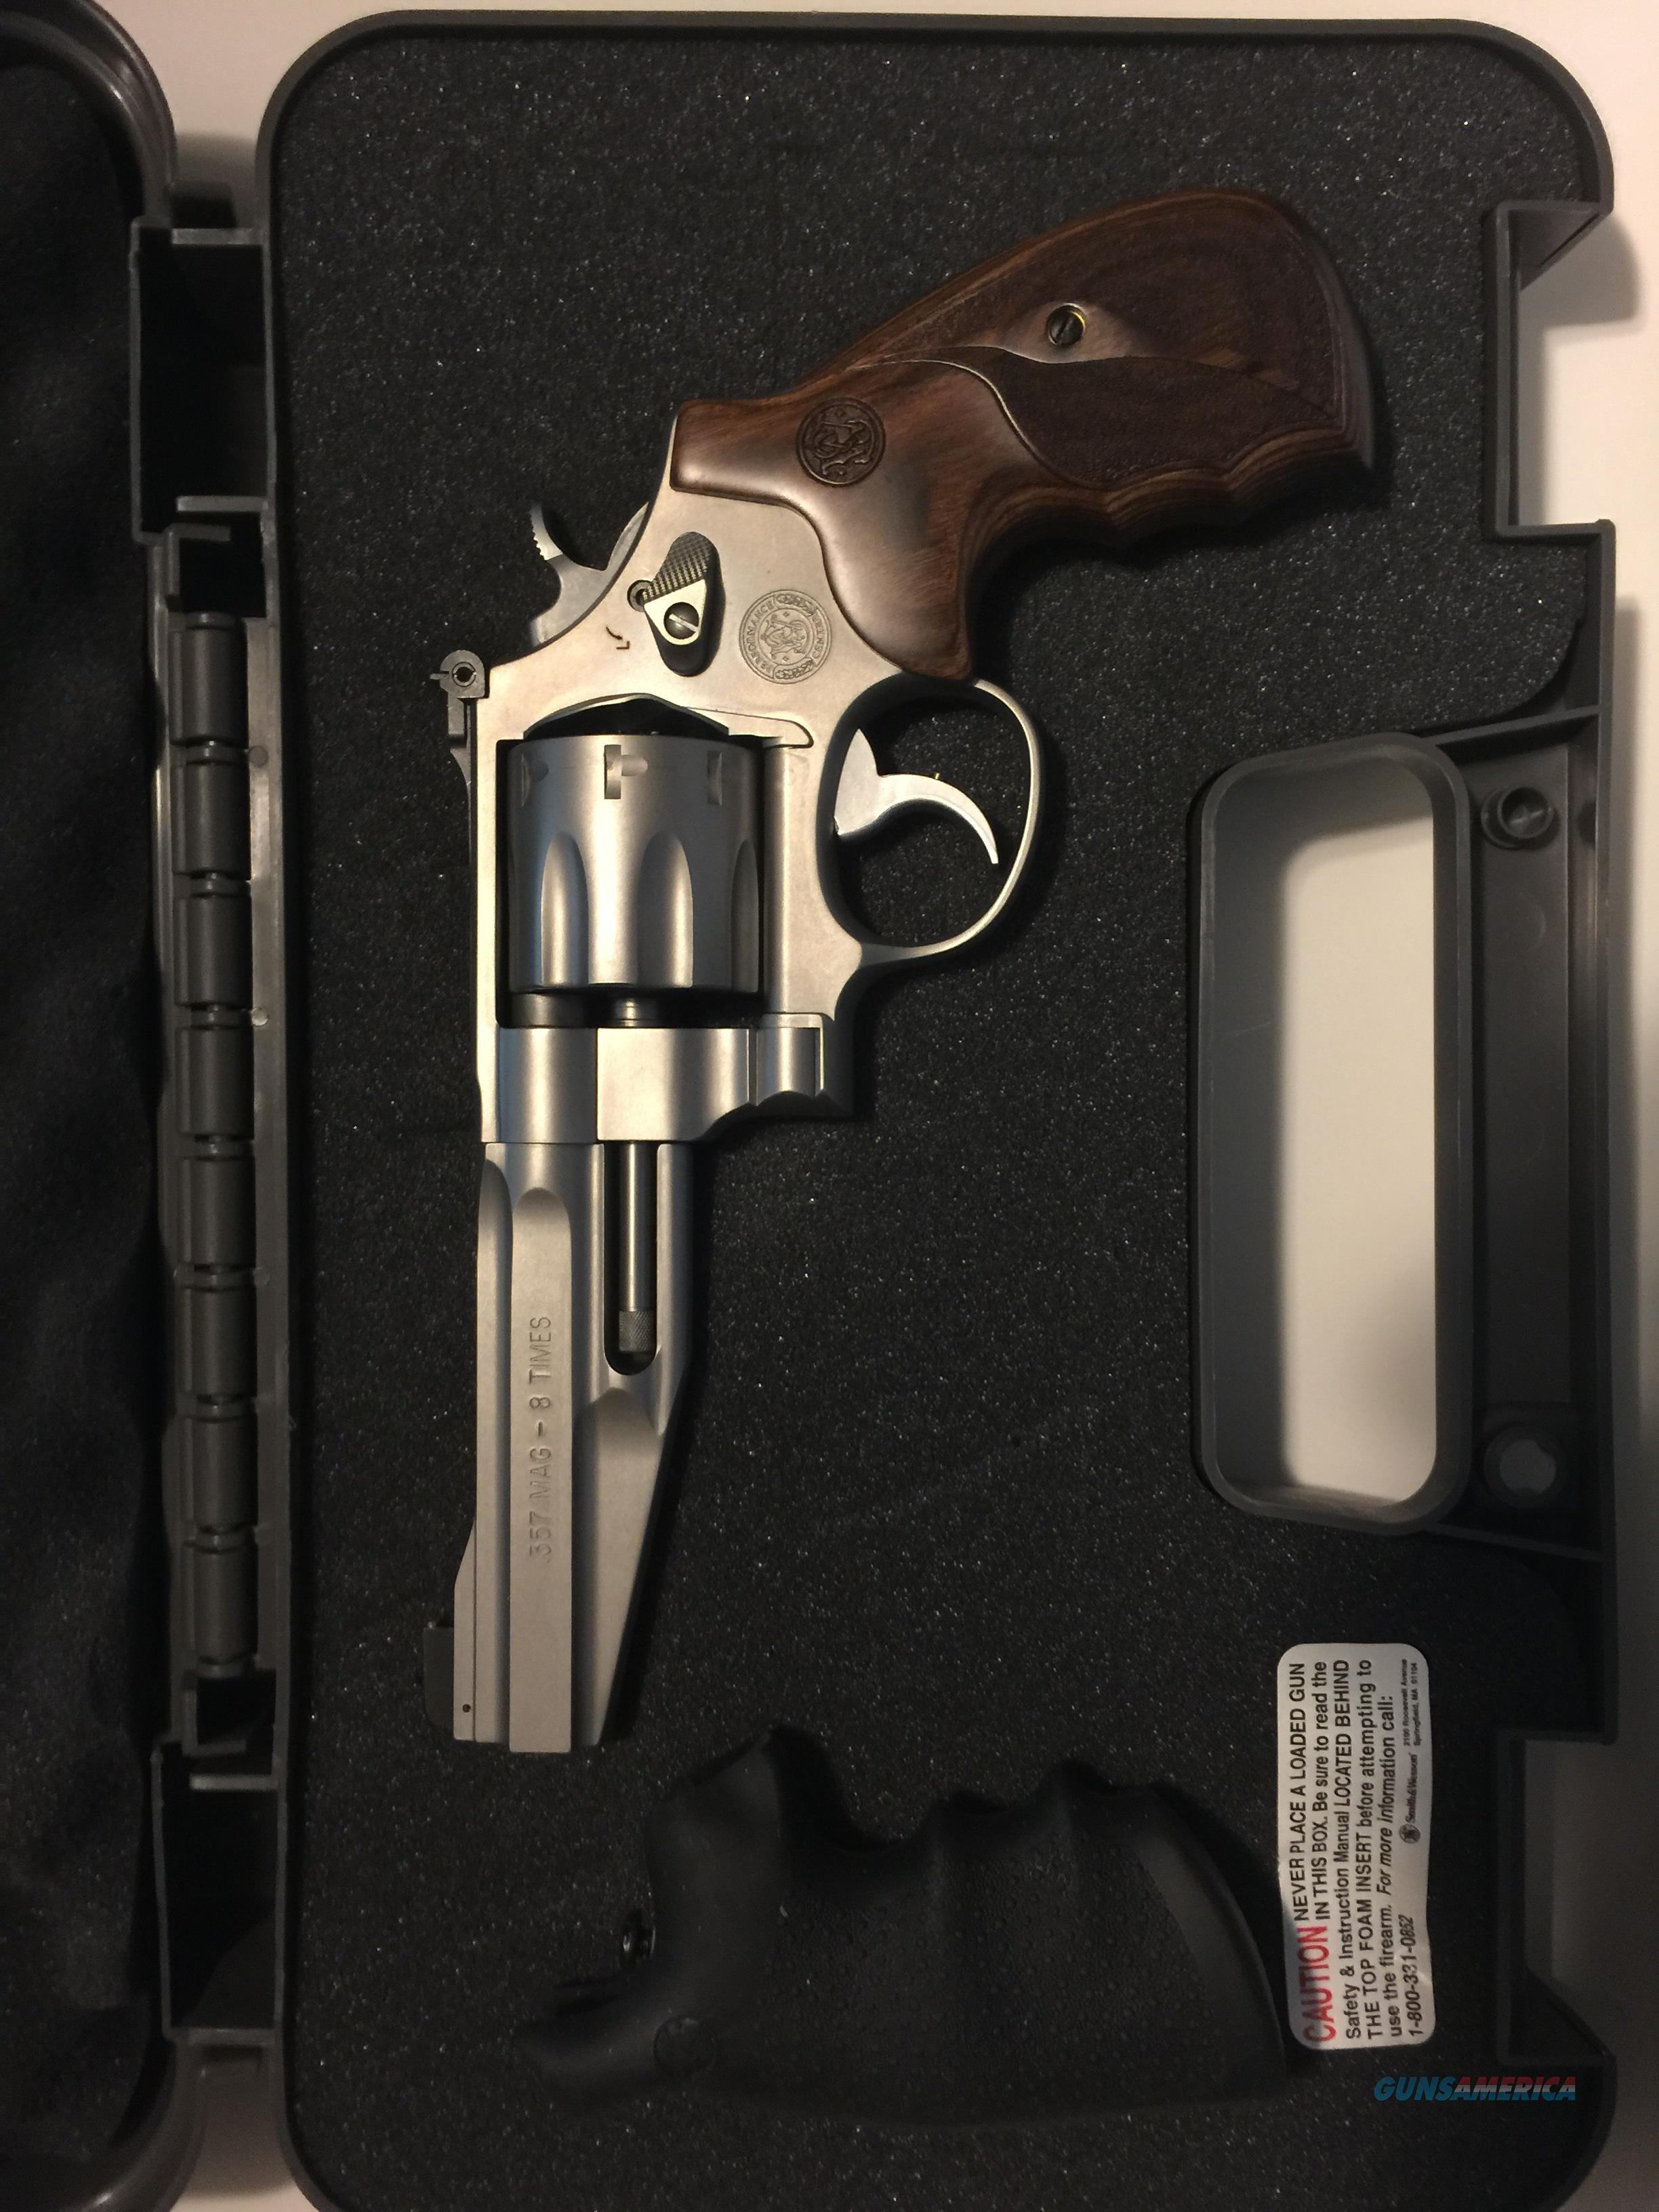 NEW Performance Center Smith & Wesson M627-5 .357 Magnum 8 rounds  Guns > Pistols > Smith & Wesson Revolvers > Performance Center